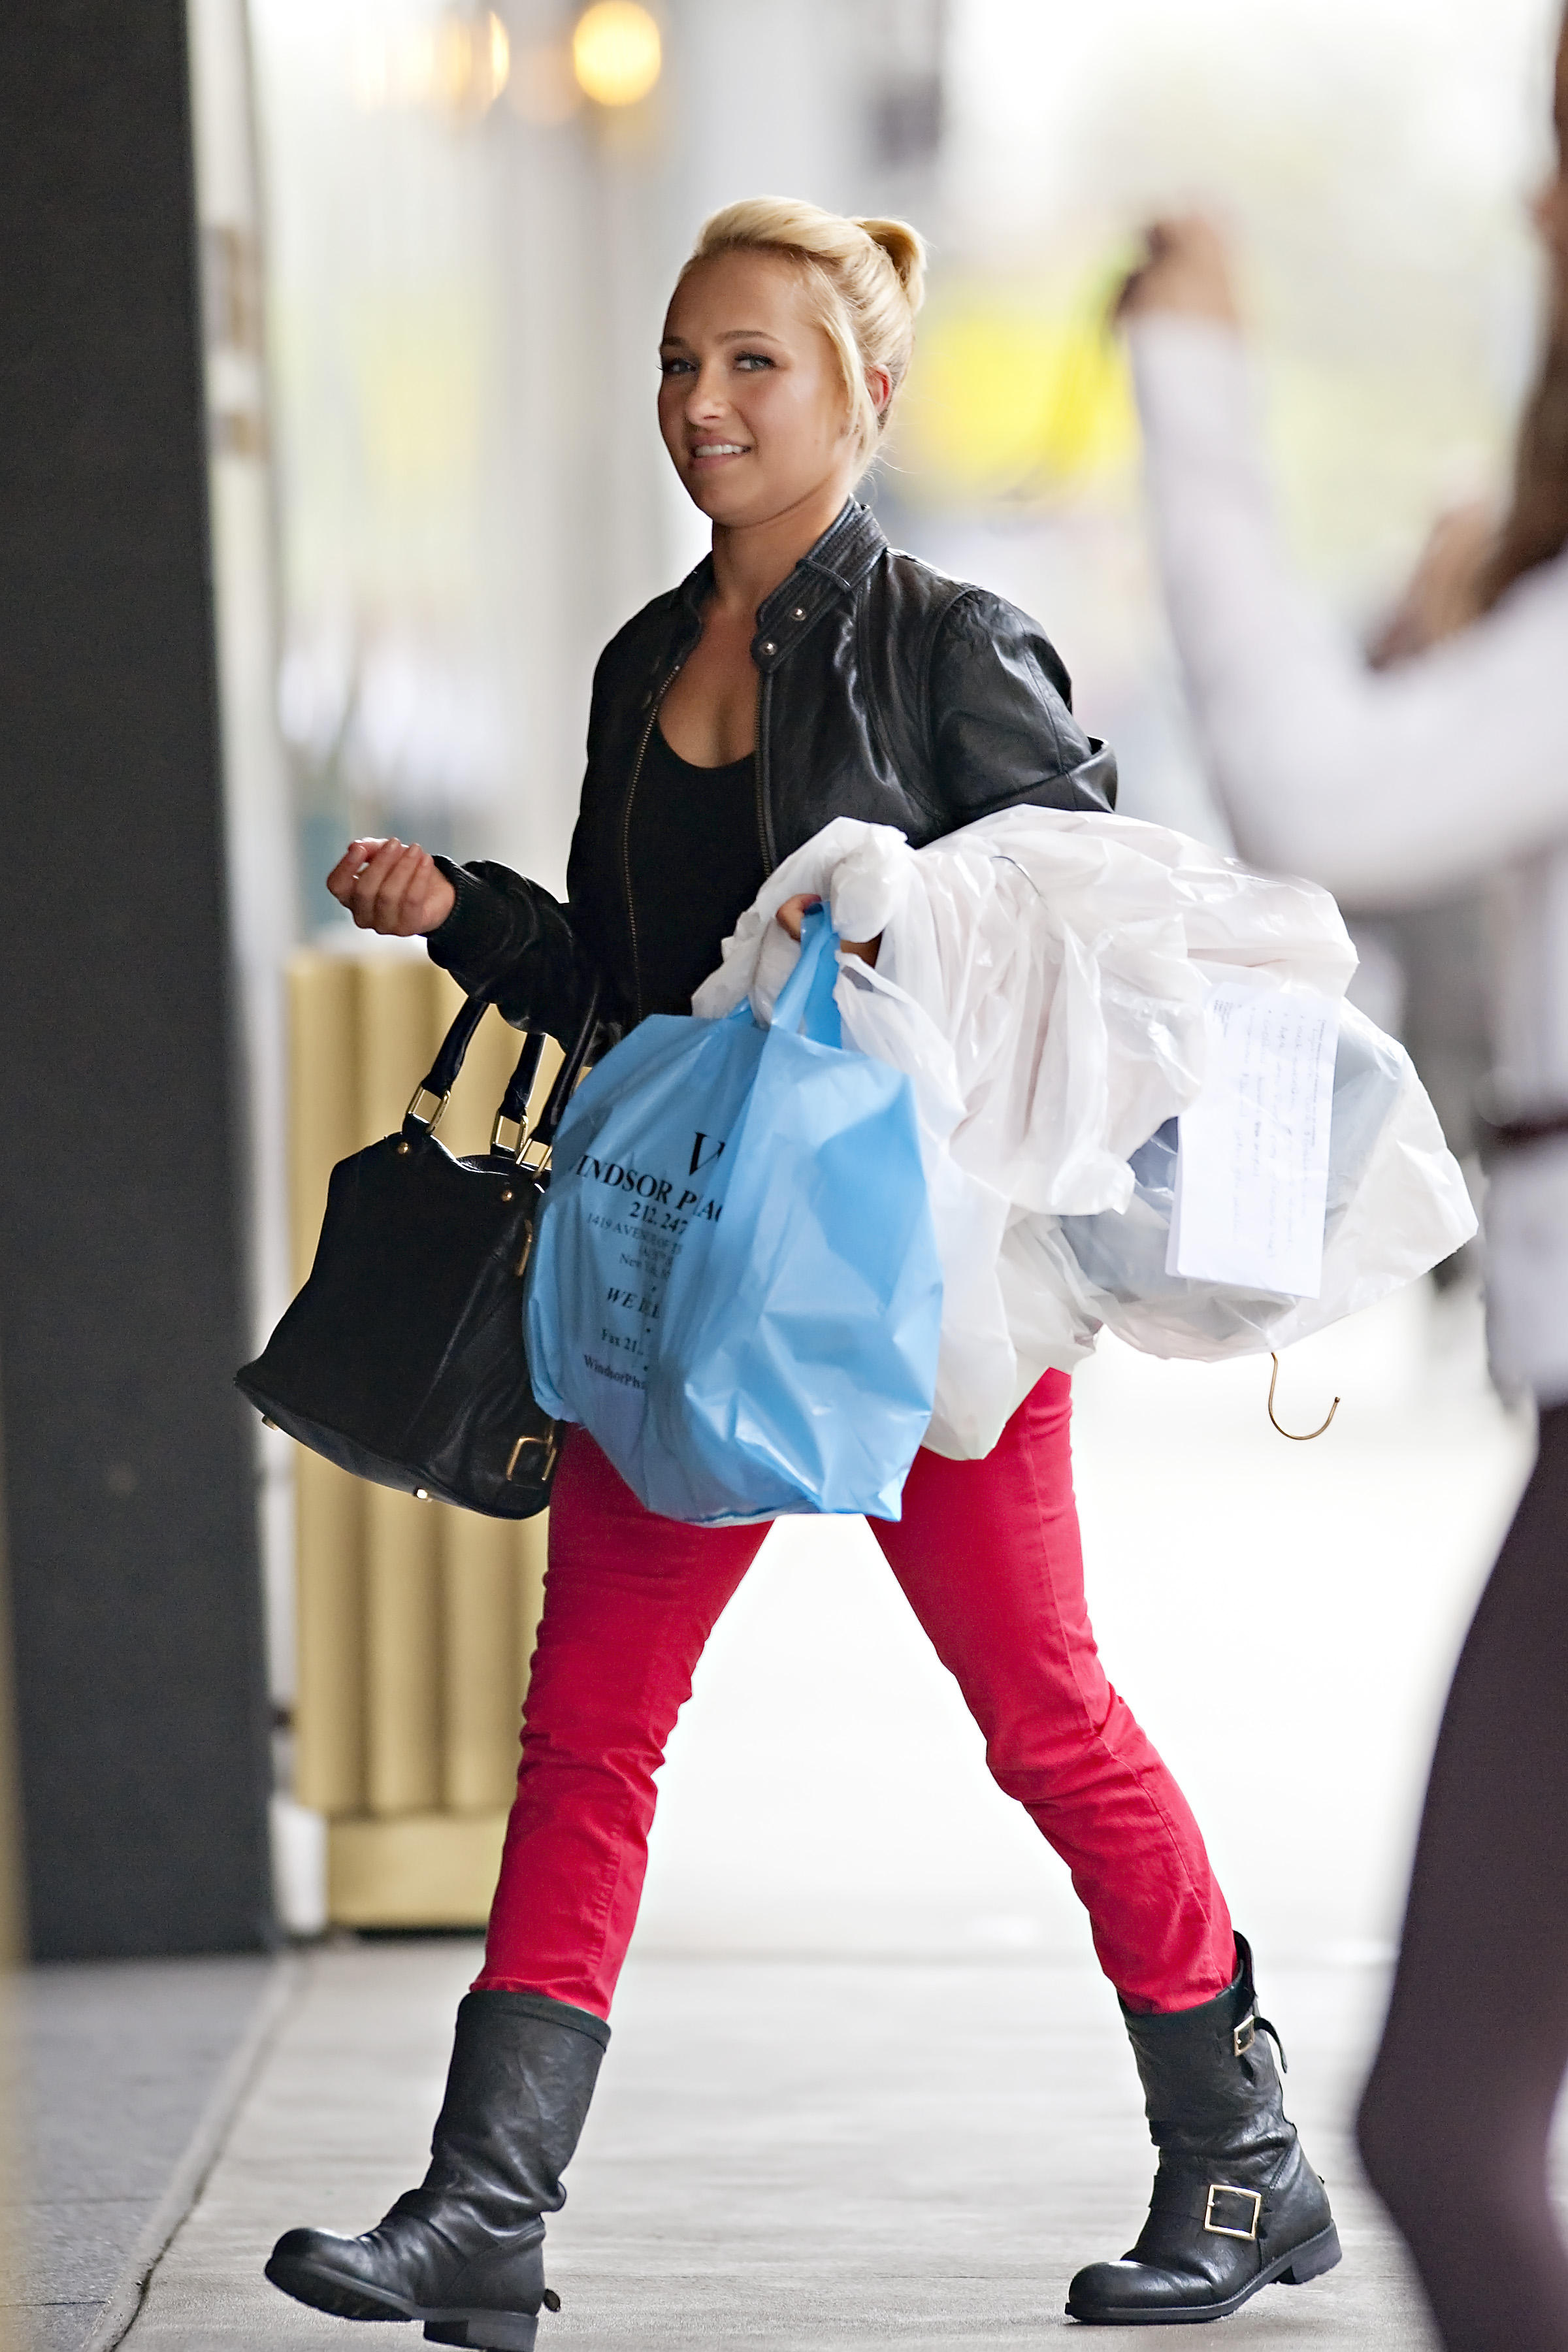 890310145_Hayden_Panettiere_out_and_about_in_NYC5_122_388lo.jpg